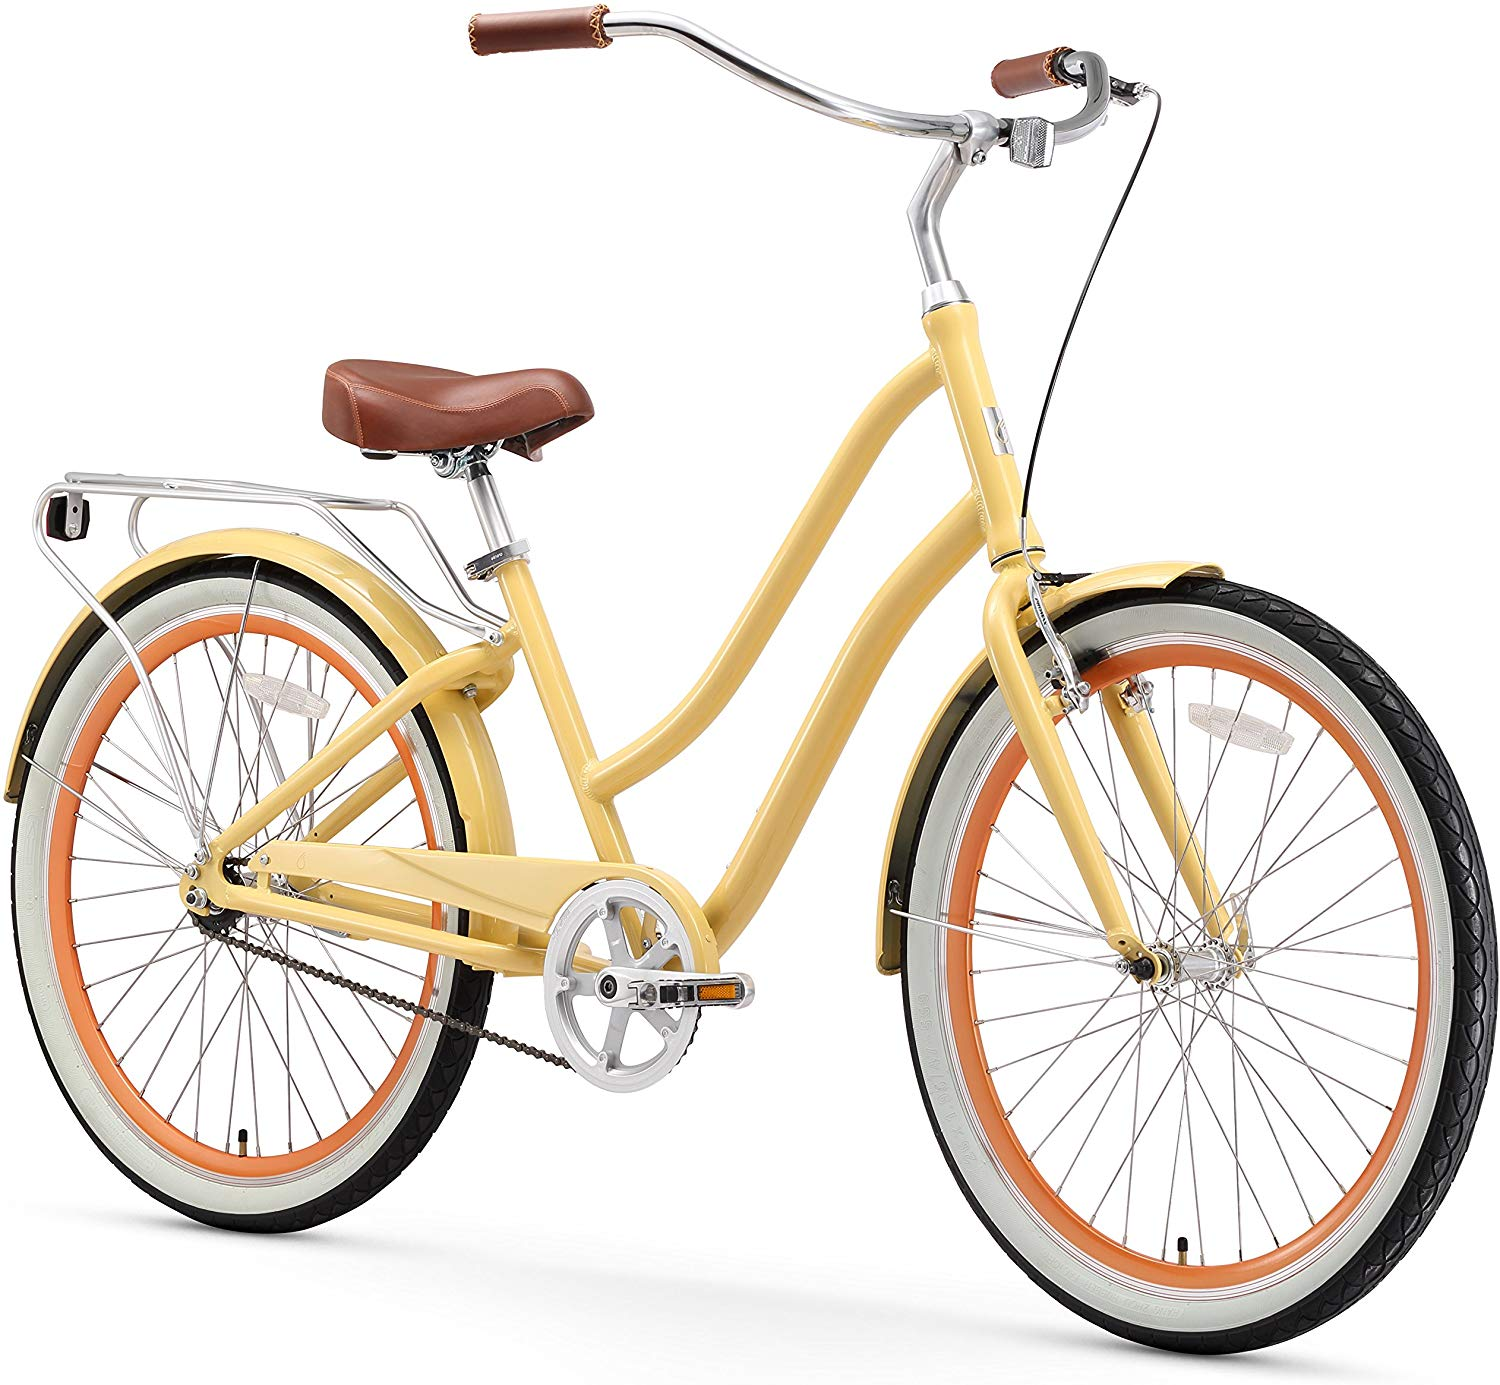 sixthreezero EVRYjourney Women's Step-Through Hybrid Alloy Beach Cruiser Bicycle